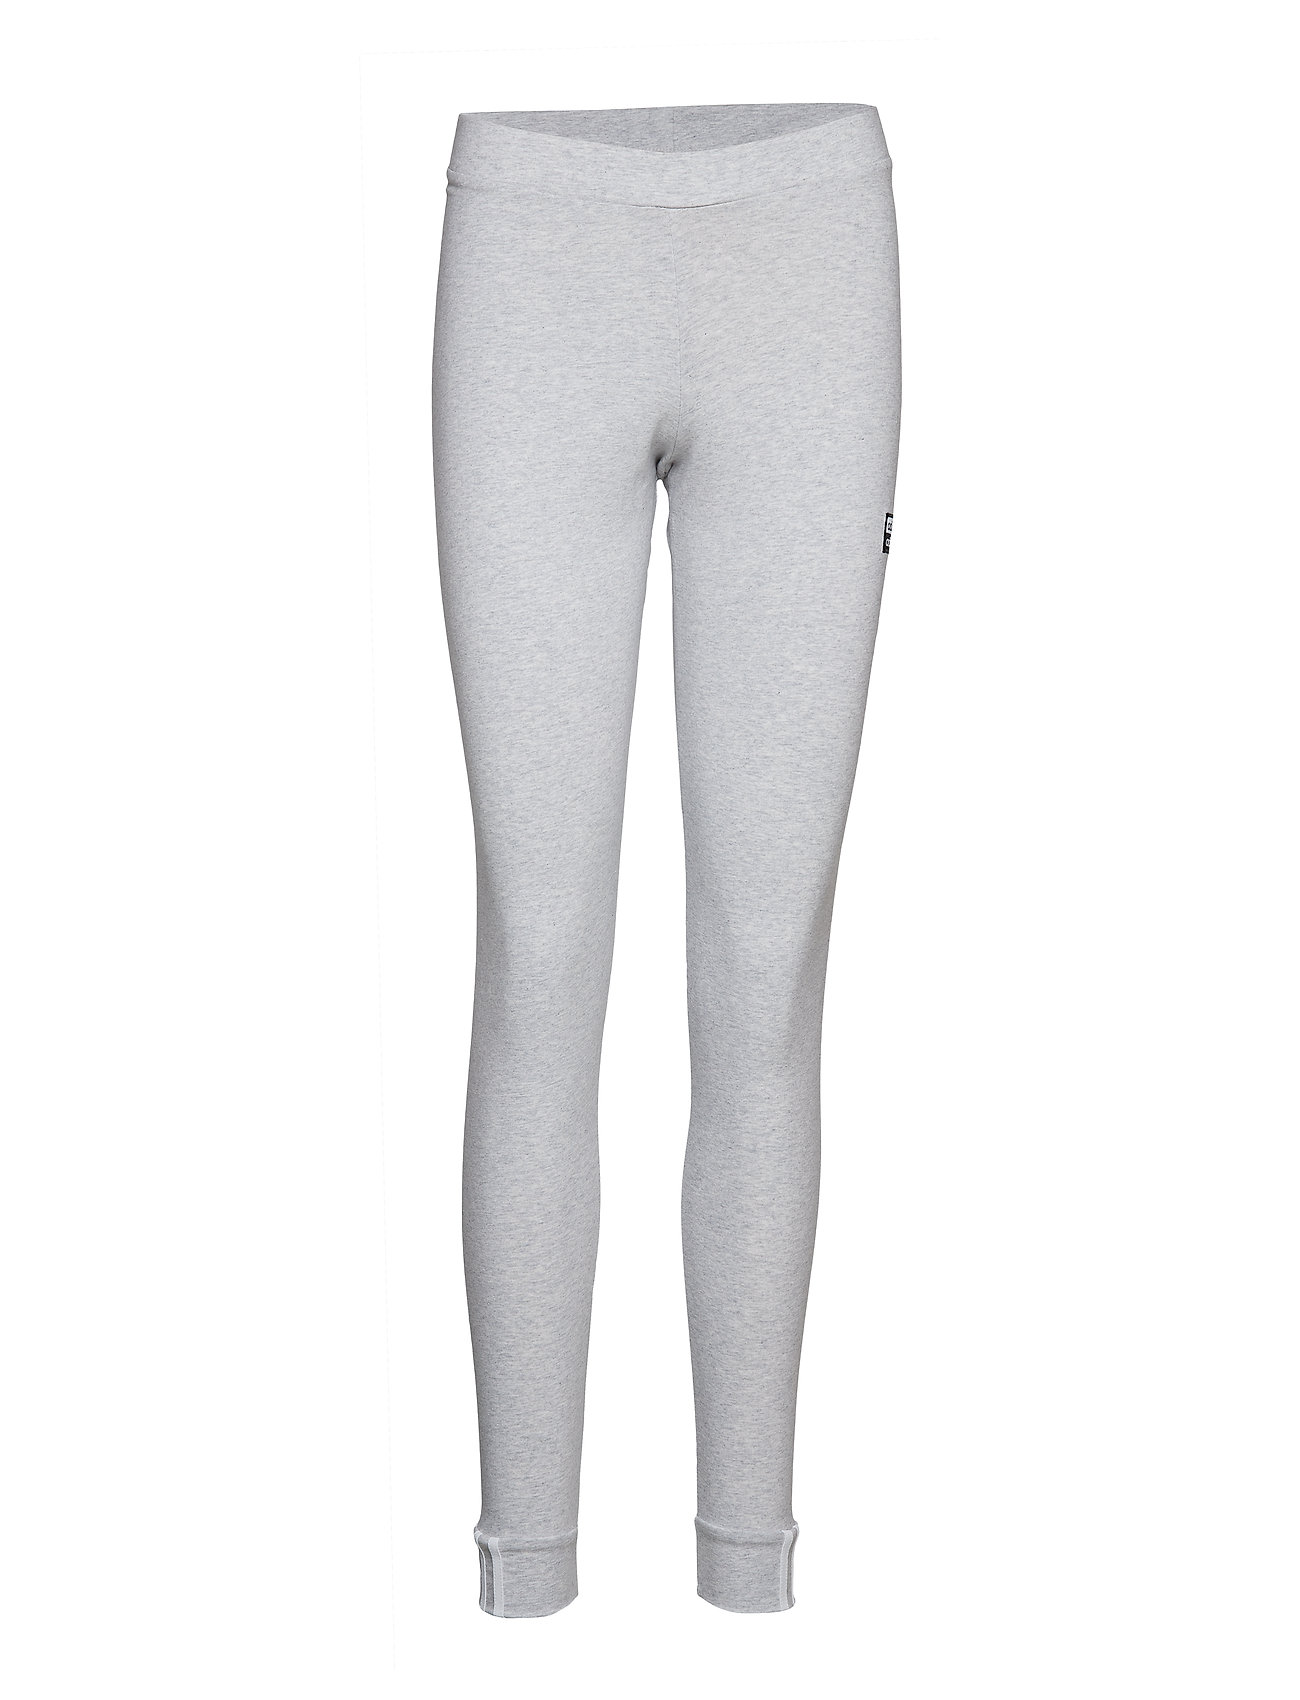 adidas Originals VOCAL TIGHT - LGREYH